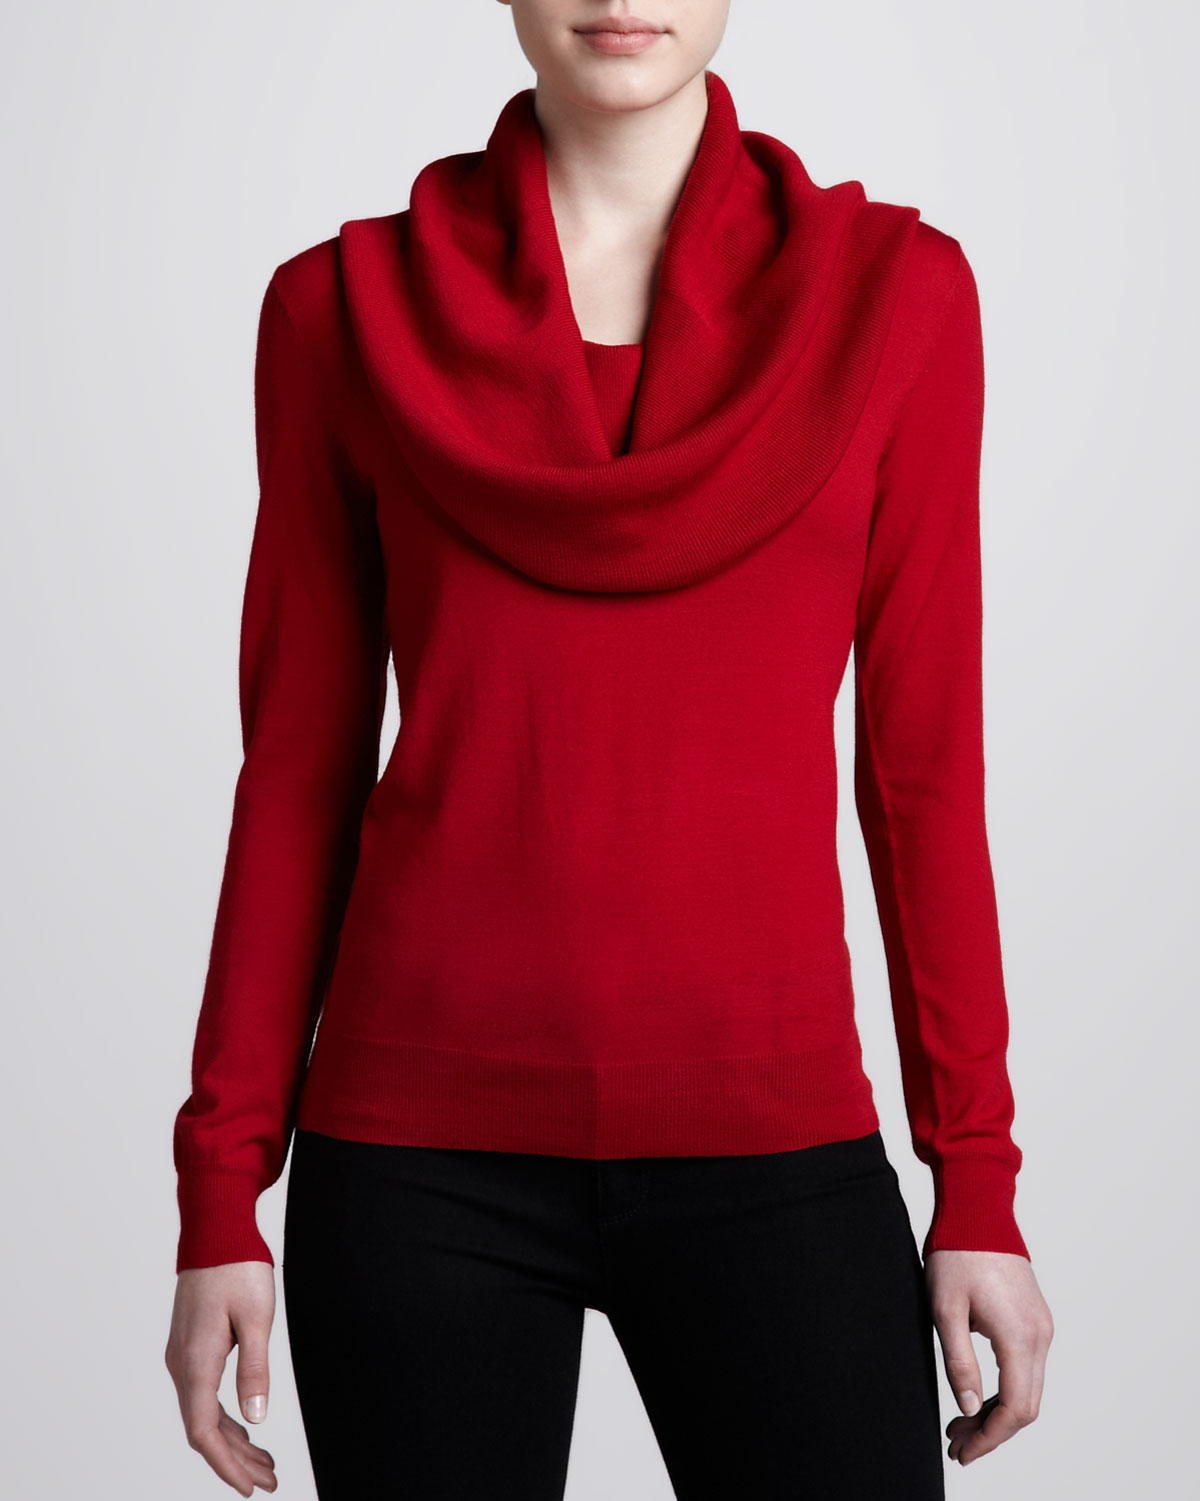 Michael kors Cowl Neck Sweater in Red | Lyst